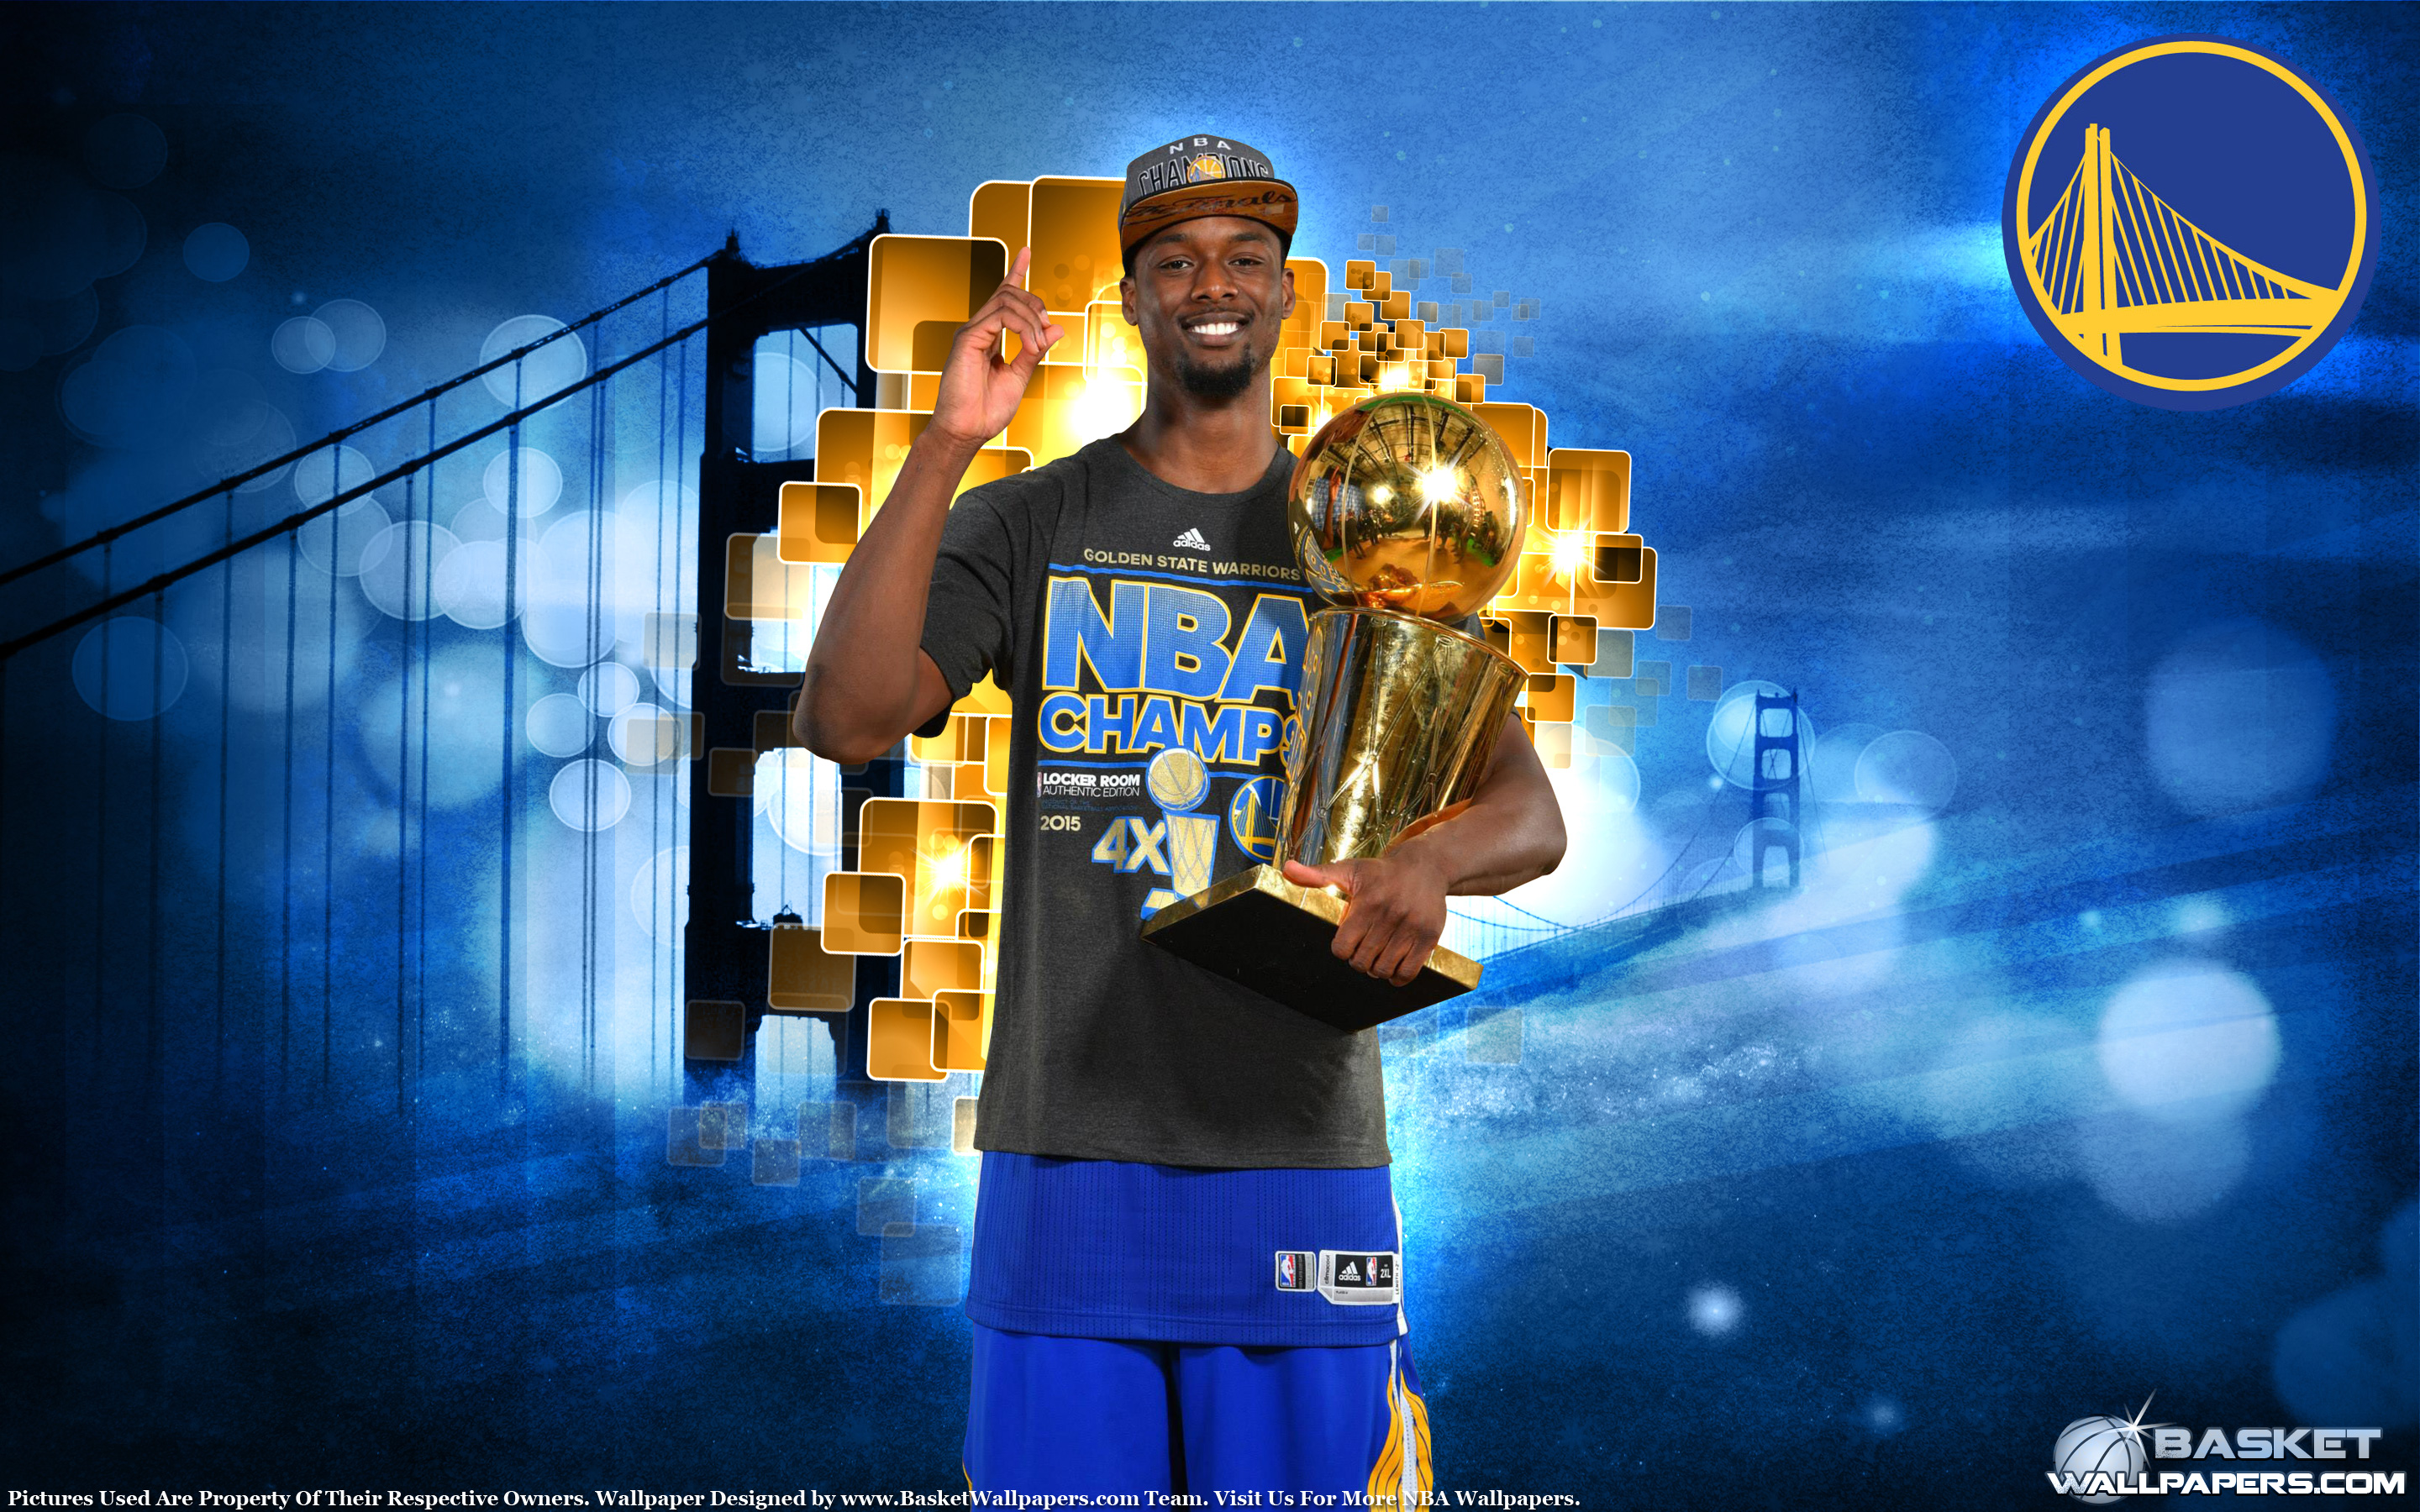 Harrison Barnes 2015 Nba Champion Wallpaper Basketball